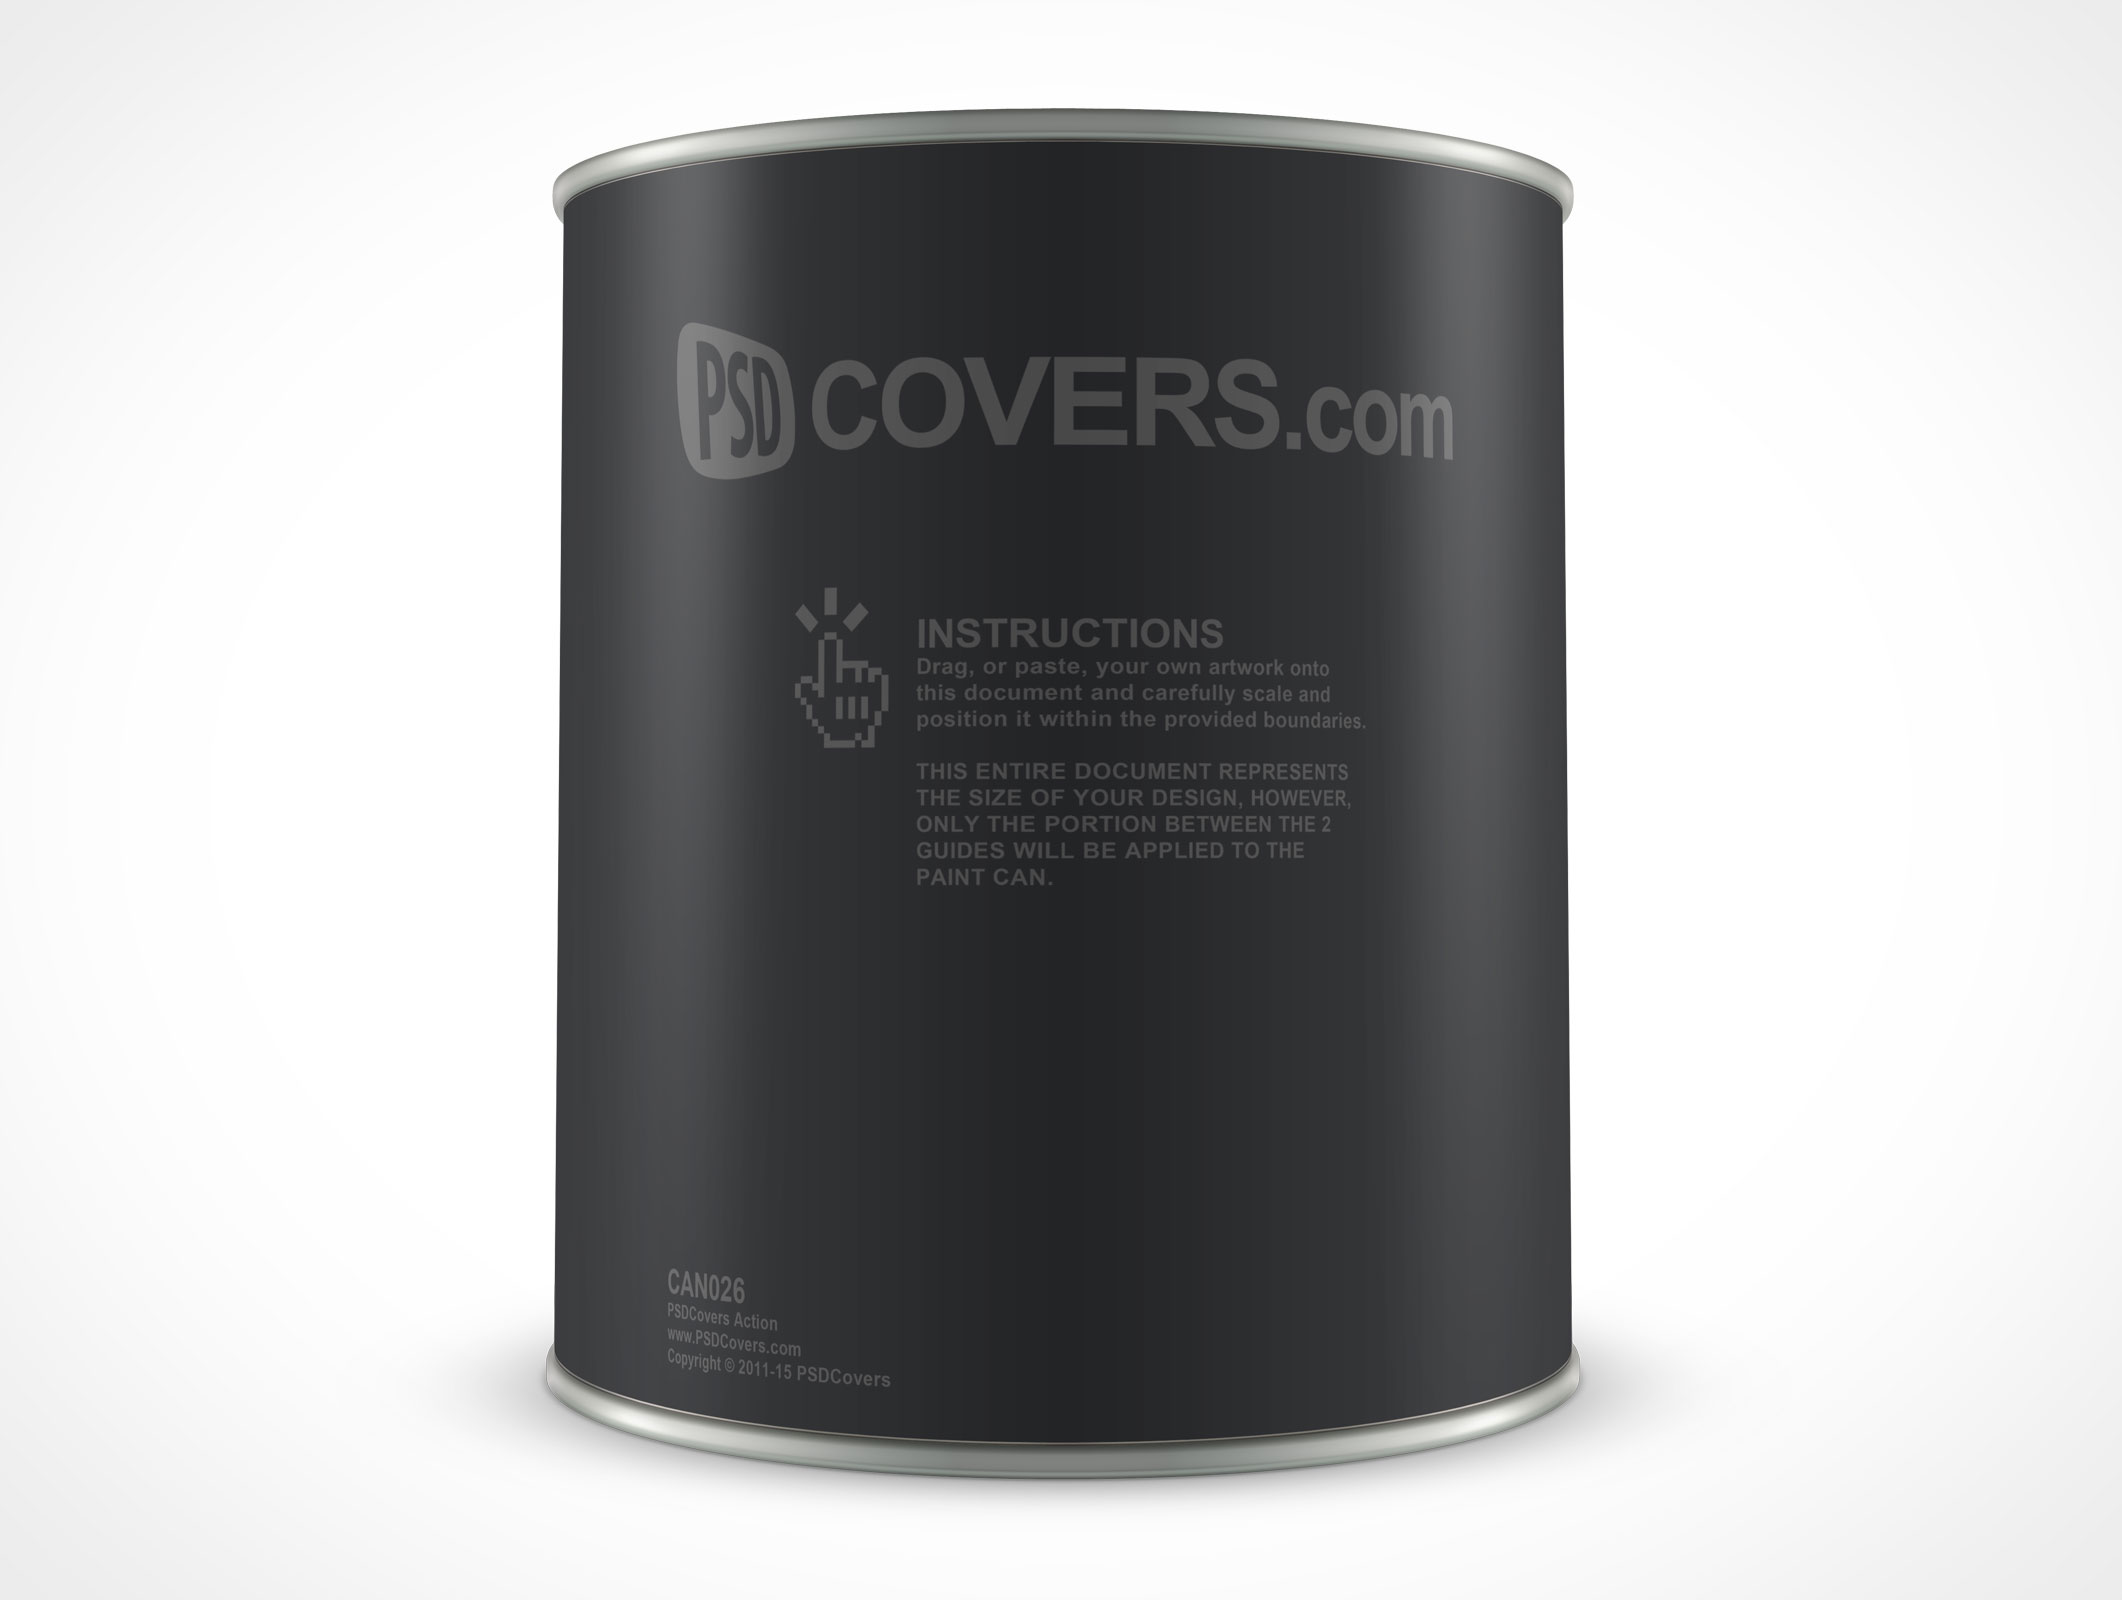 16 psd paint cans images paint cans paintbrush bucket